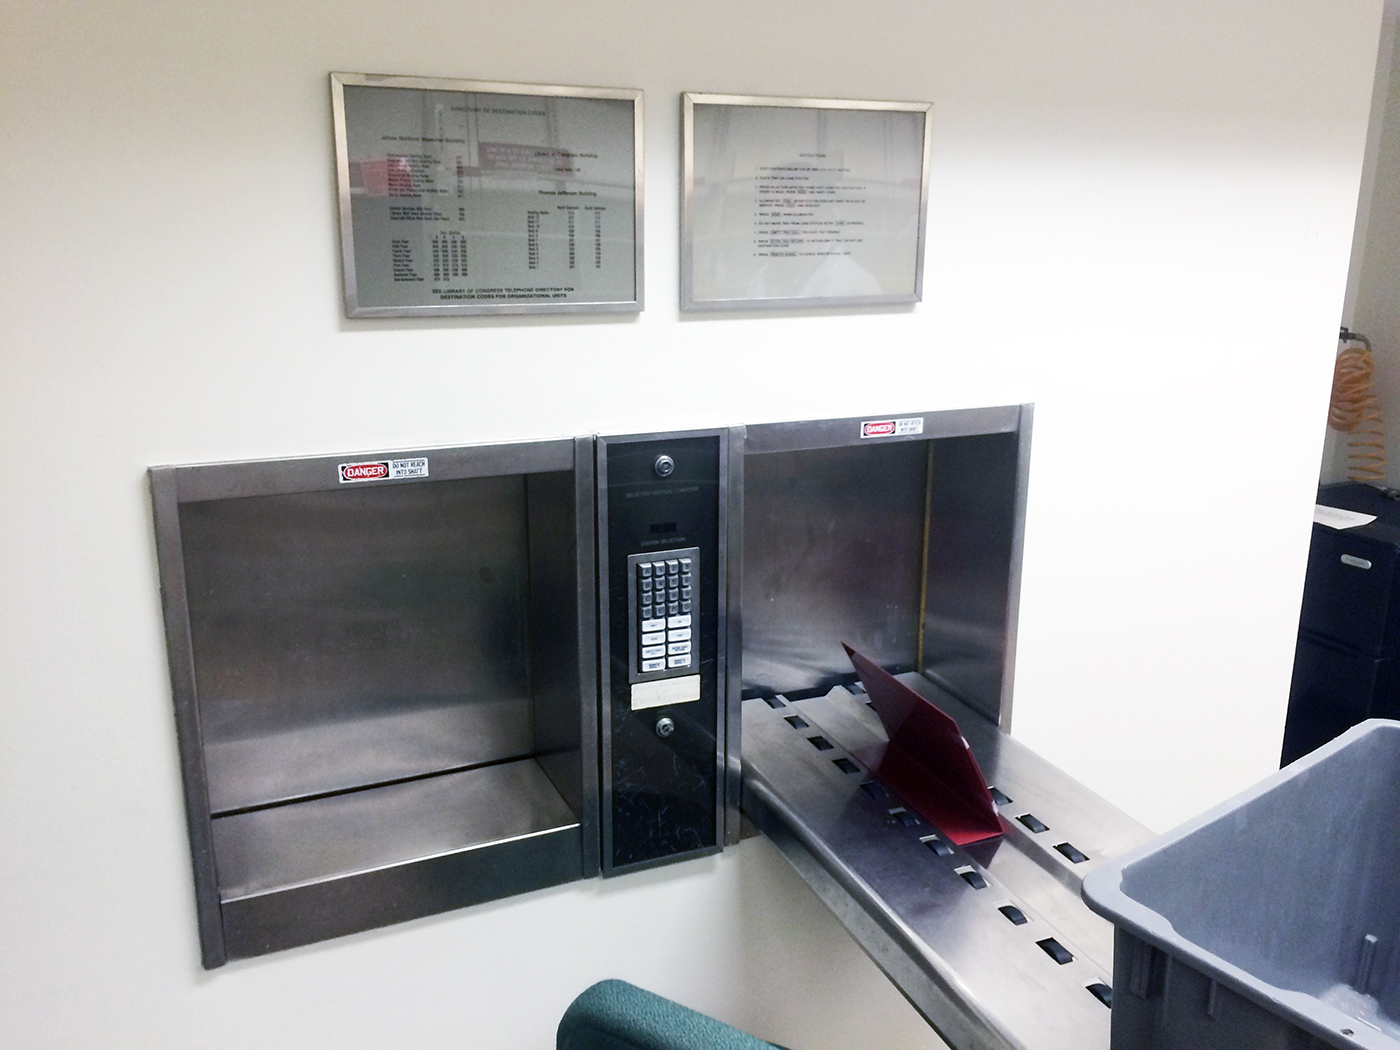 RECIEVING STATION IN THE MADISON BUILDING. ELLIOT CARTER PHOTO